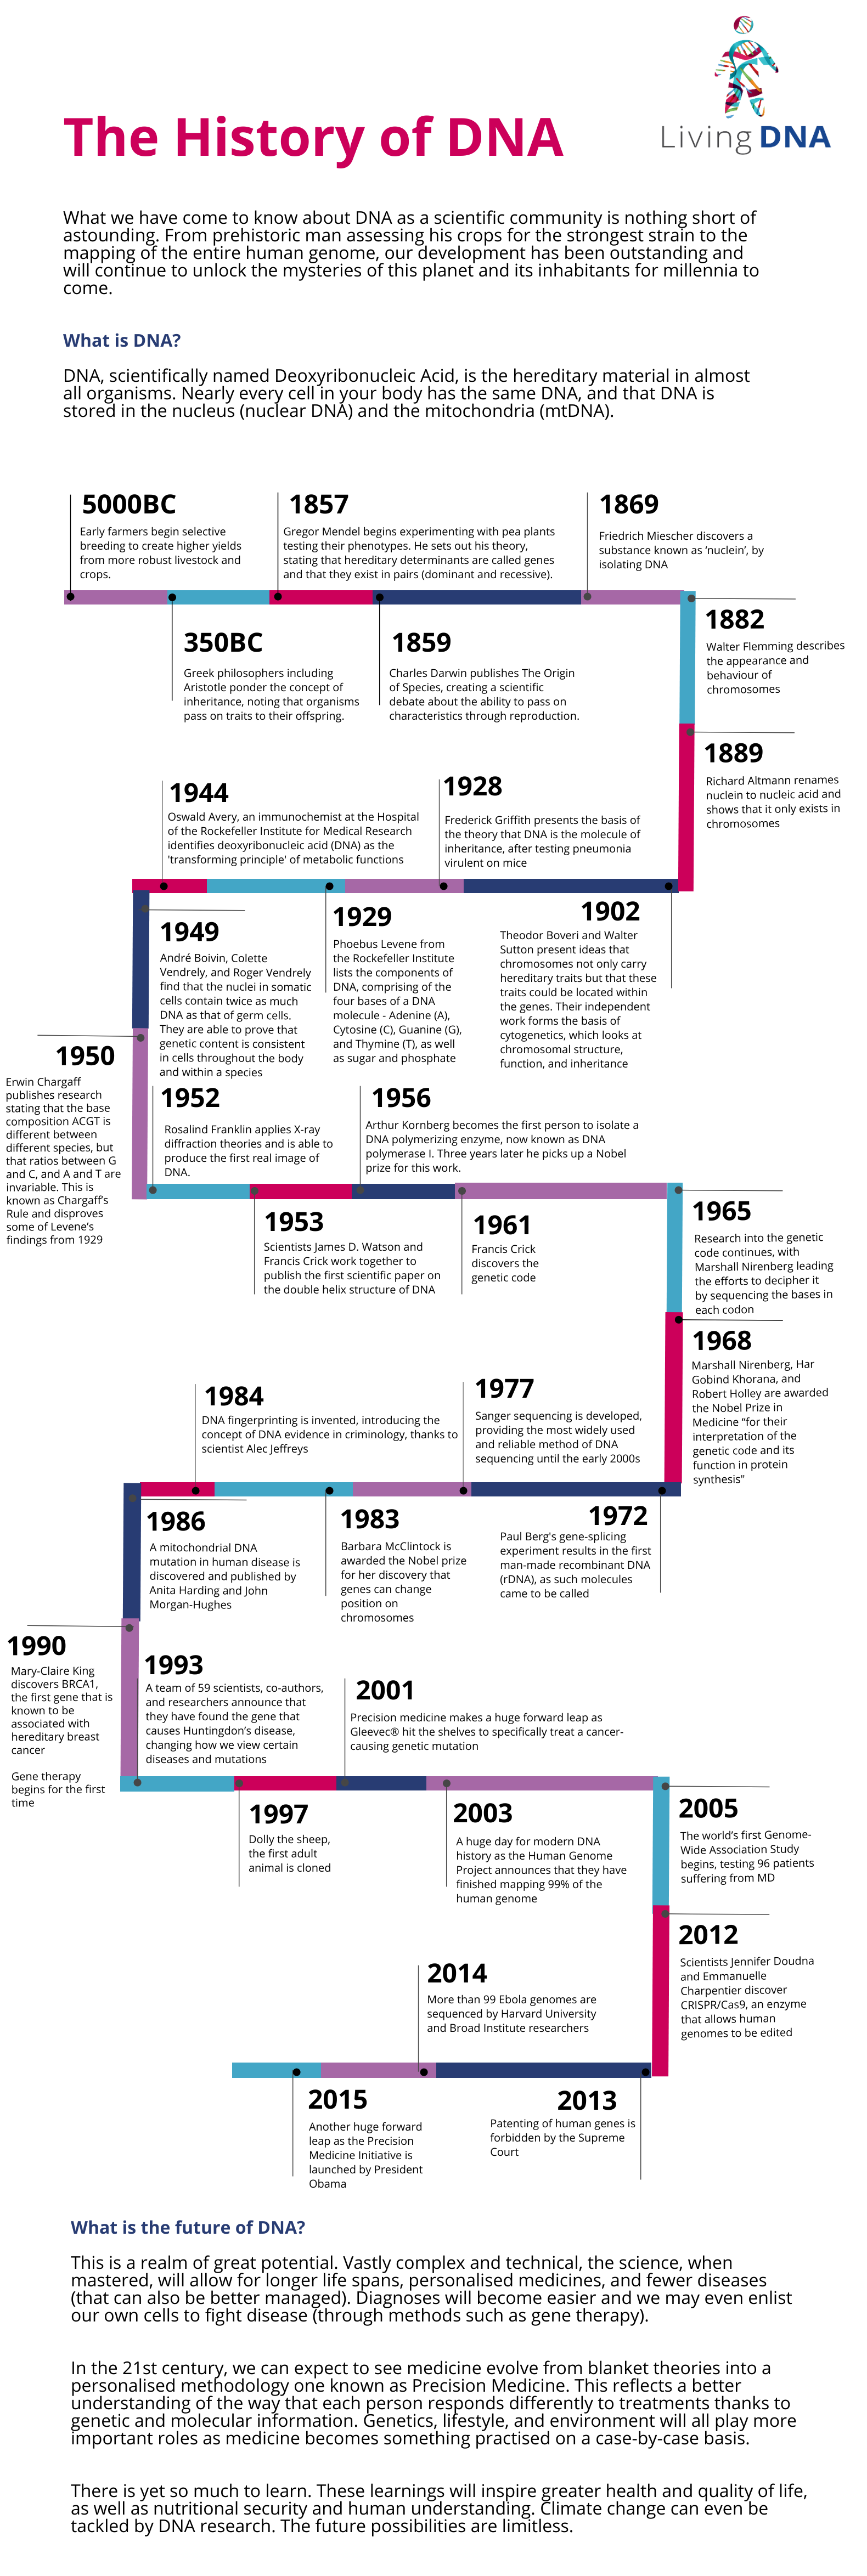 The History of DNA Timeline